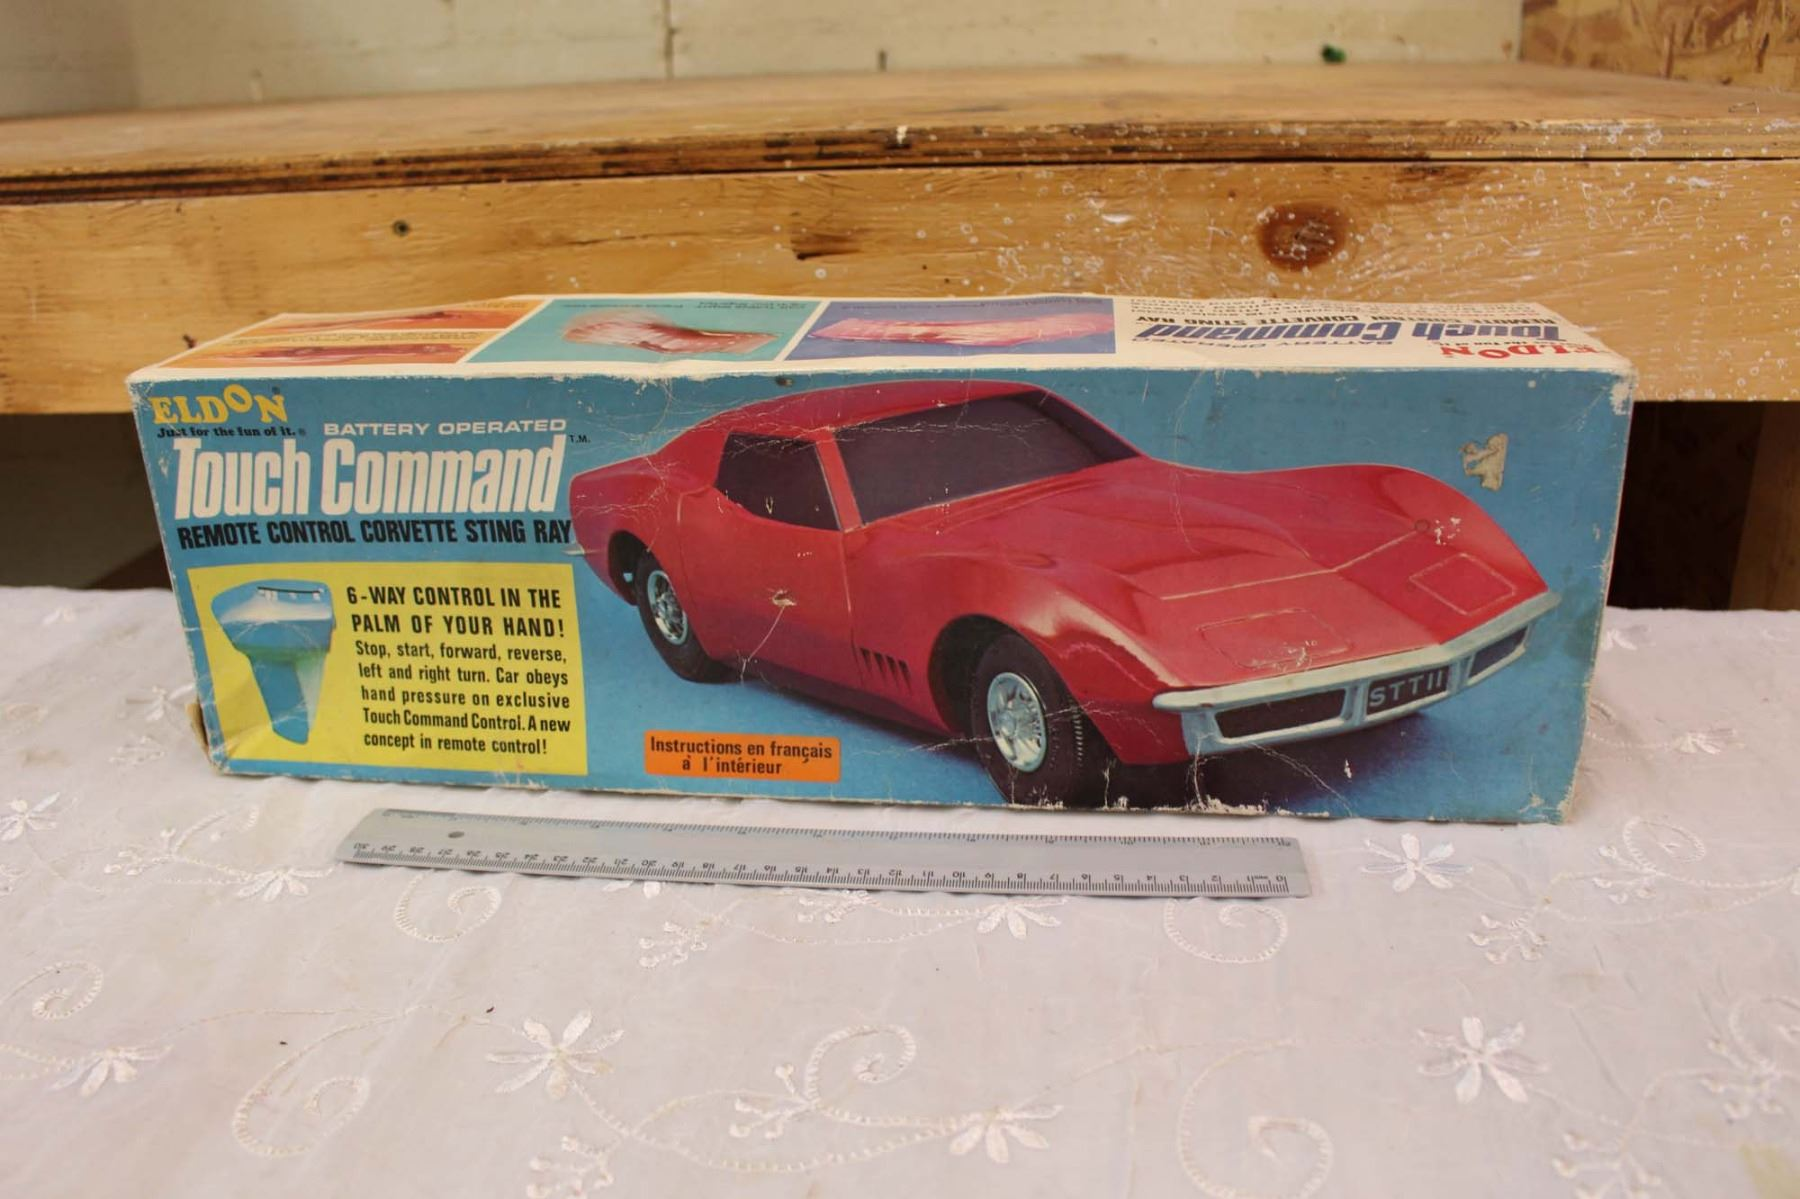 Image 1 1968 Eldon Touch Command Remote Control Corvette Sting Ray